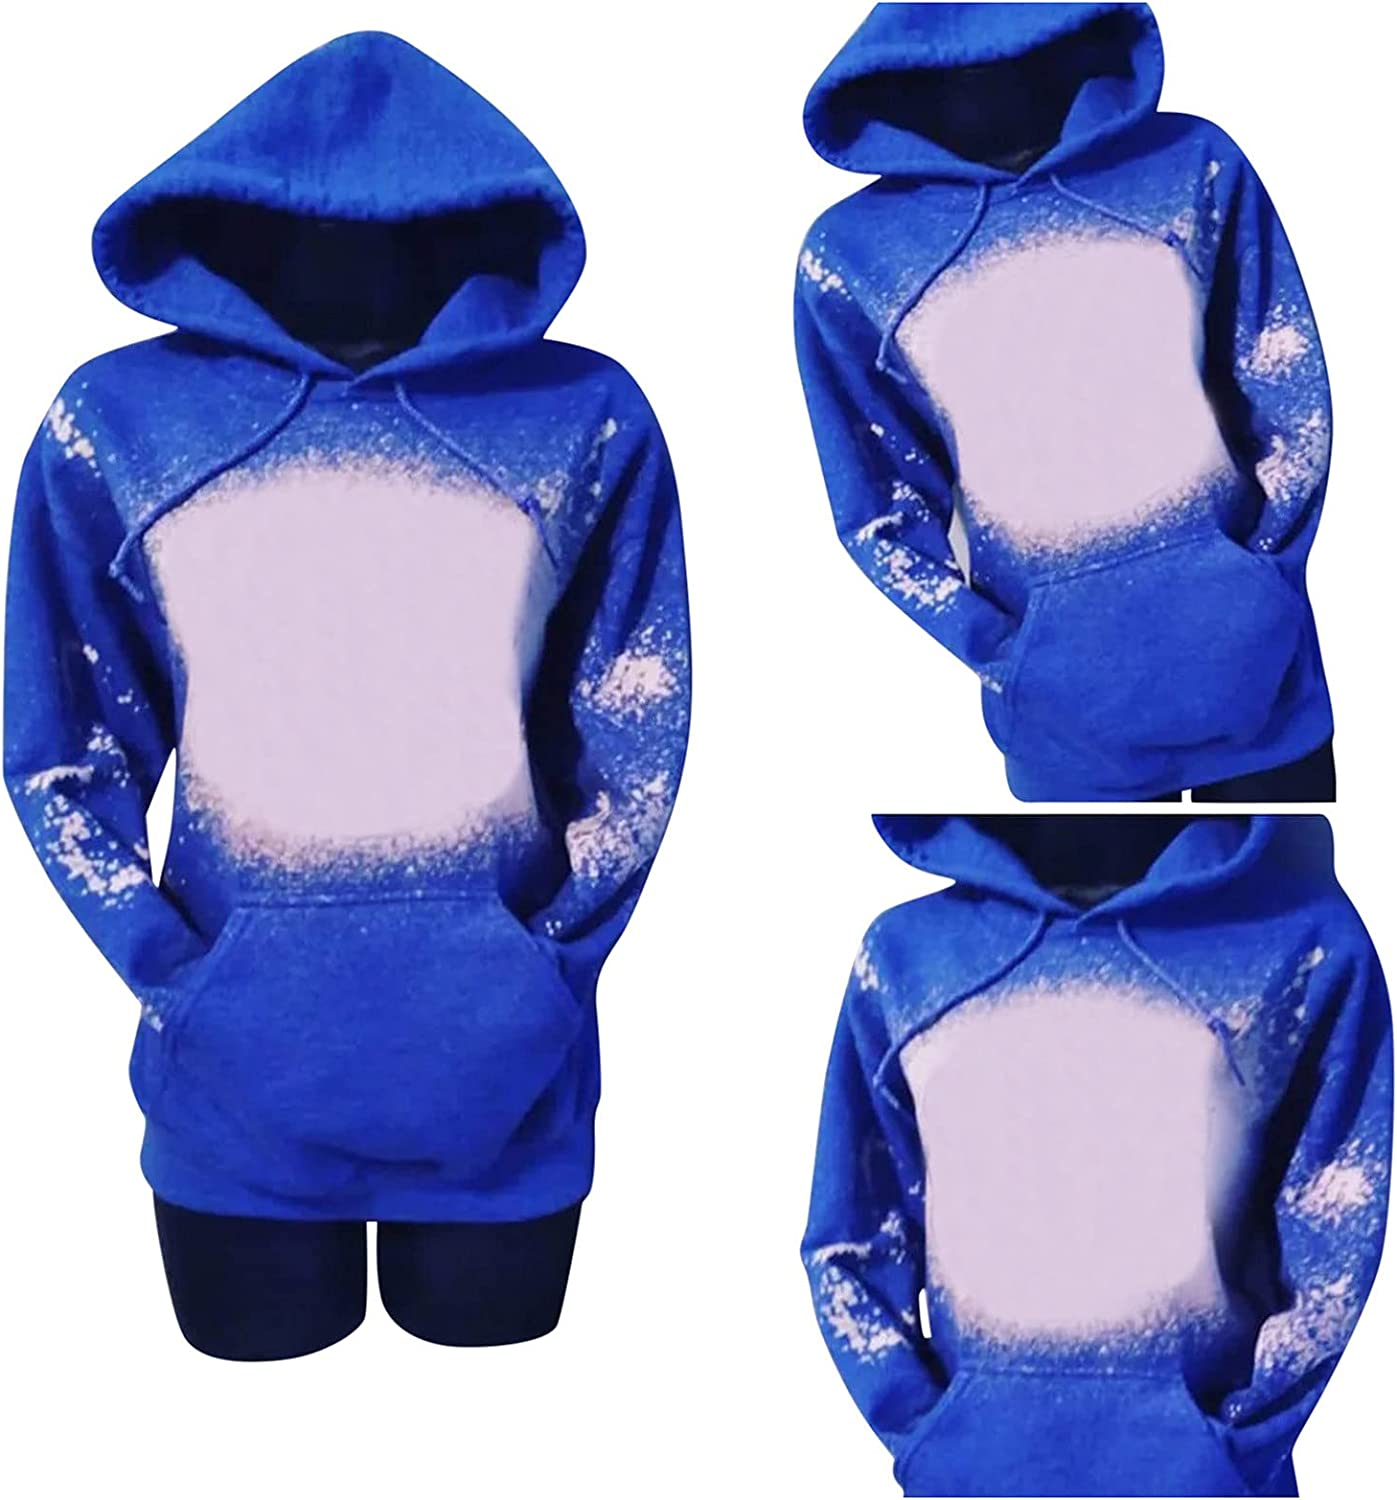 Bleached Hoodies for Women Pullover Casual Lightweight Distressed Hooded Sweatshirt Graphic Letter Print Long Sleeve Shirts